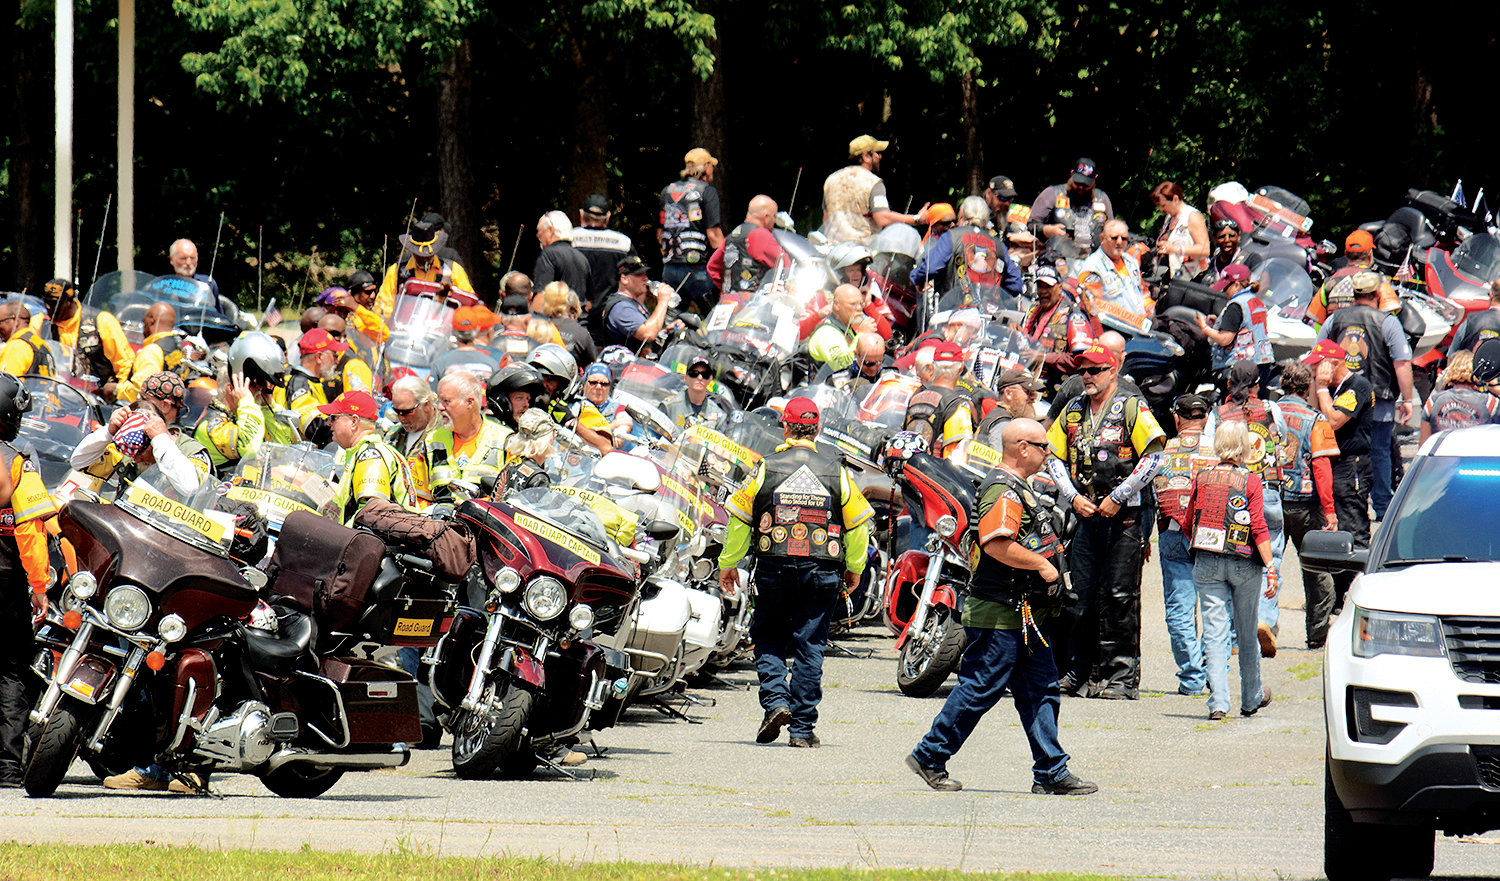 Run for the Wall, an annual pilgrimage of motorcycle riders from California to the Vietnam Memorial, will again convene in Siler City on their journey. They will stop and have lunch at the Pentecostal Holiness Church.